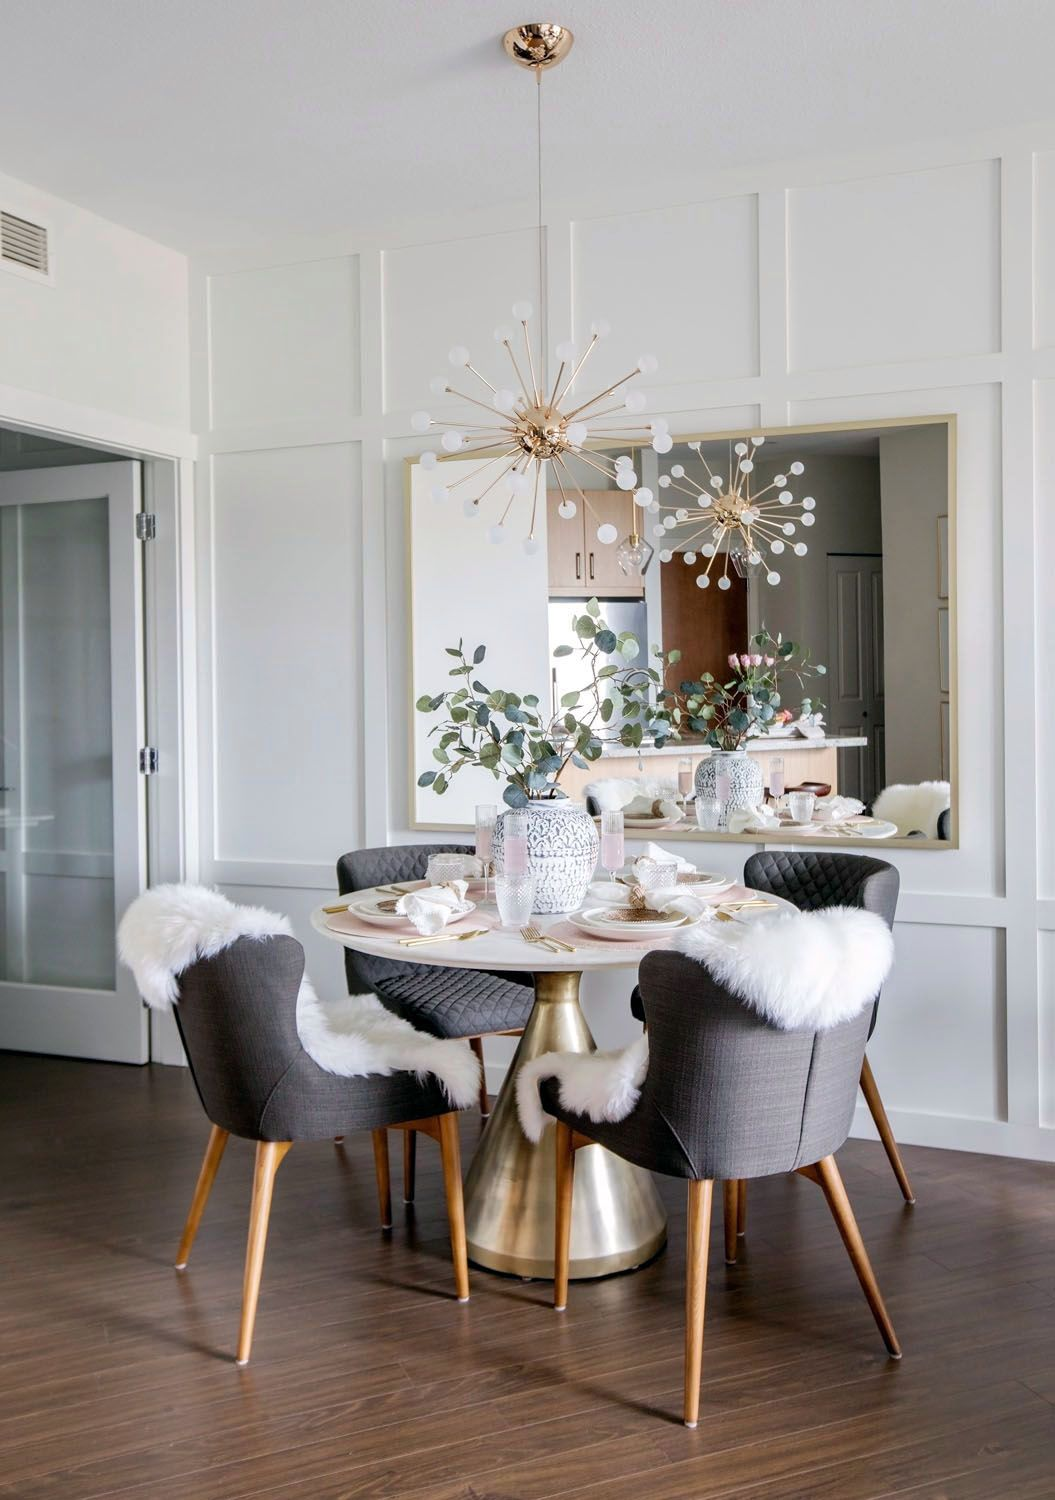 Super Creative Dining Room Chandeliers Pinterest That Will Impress You